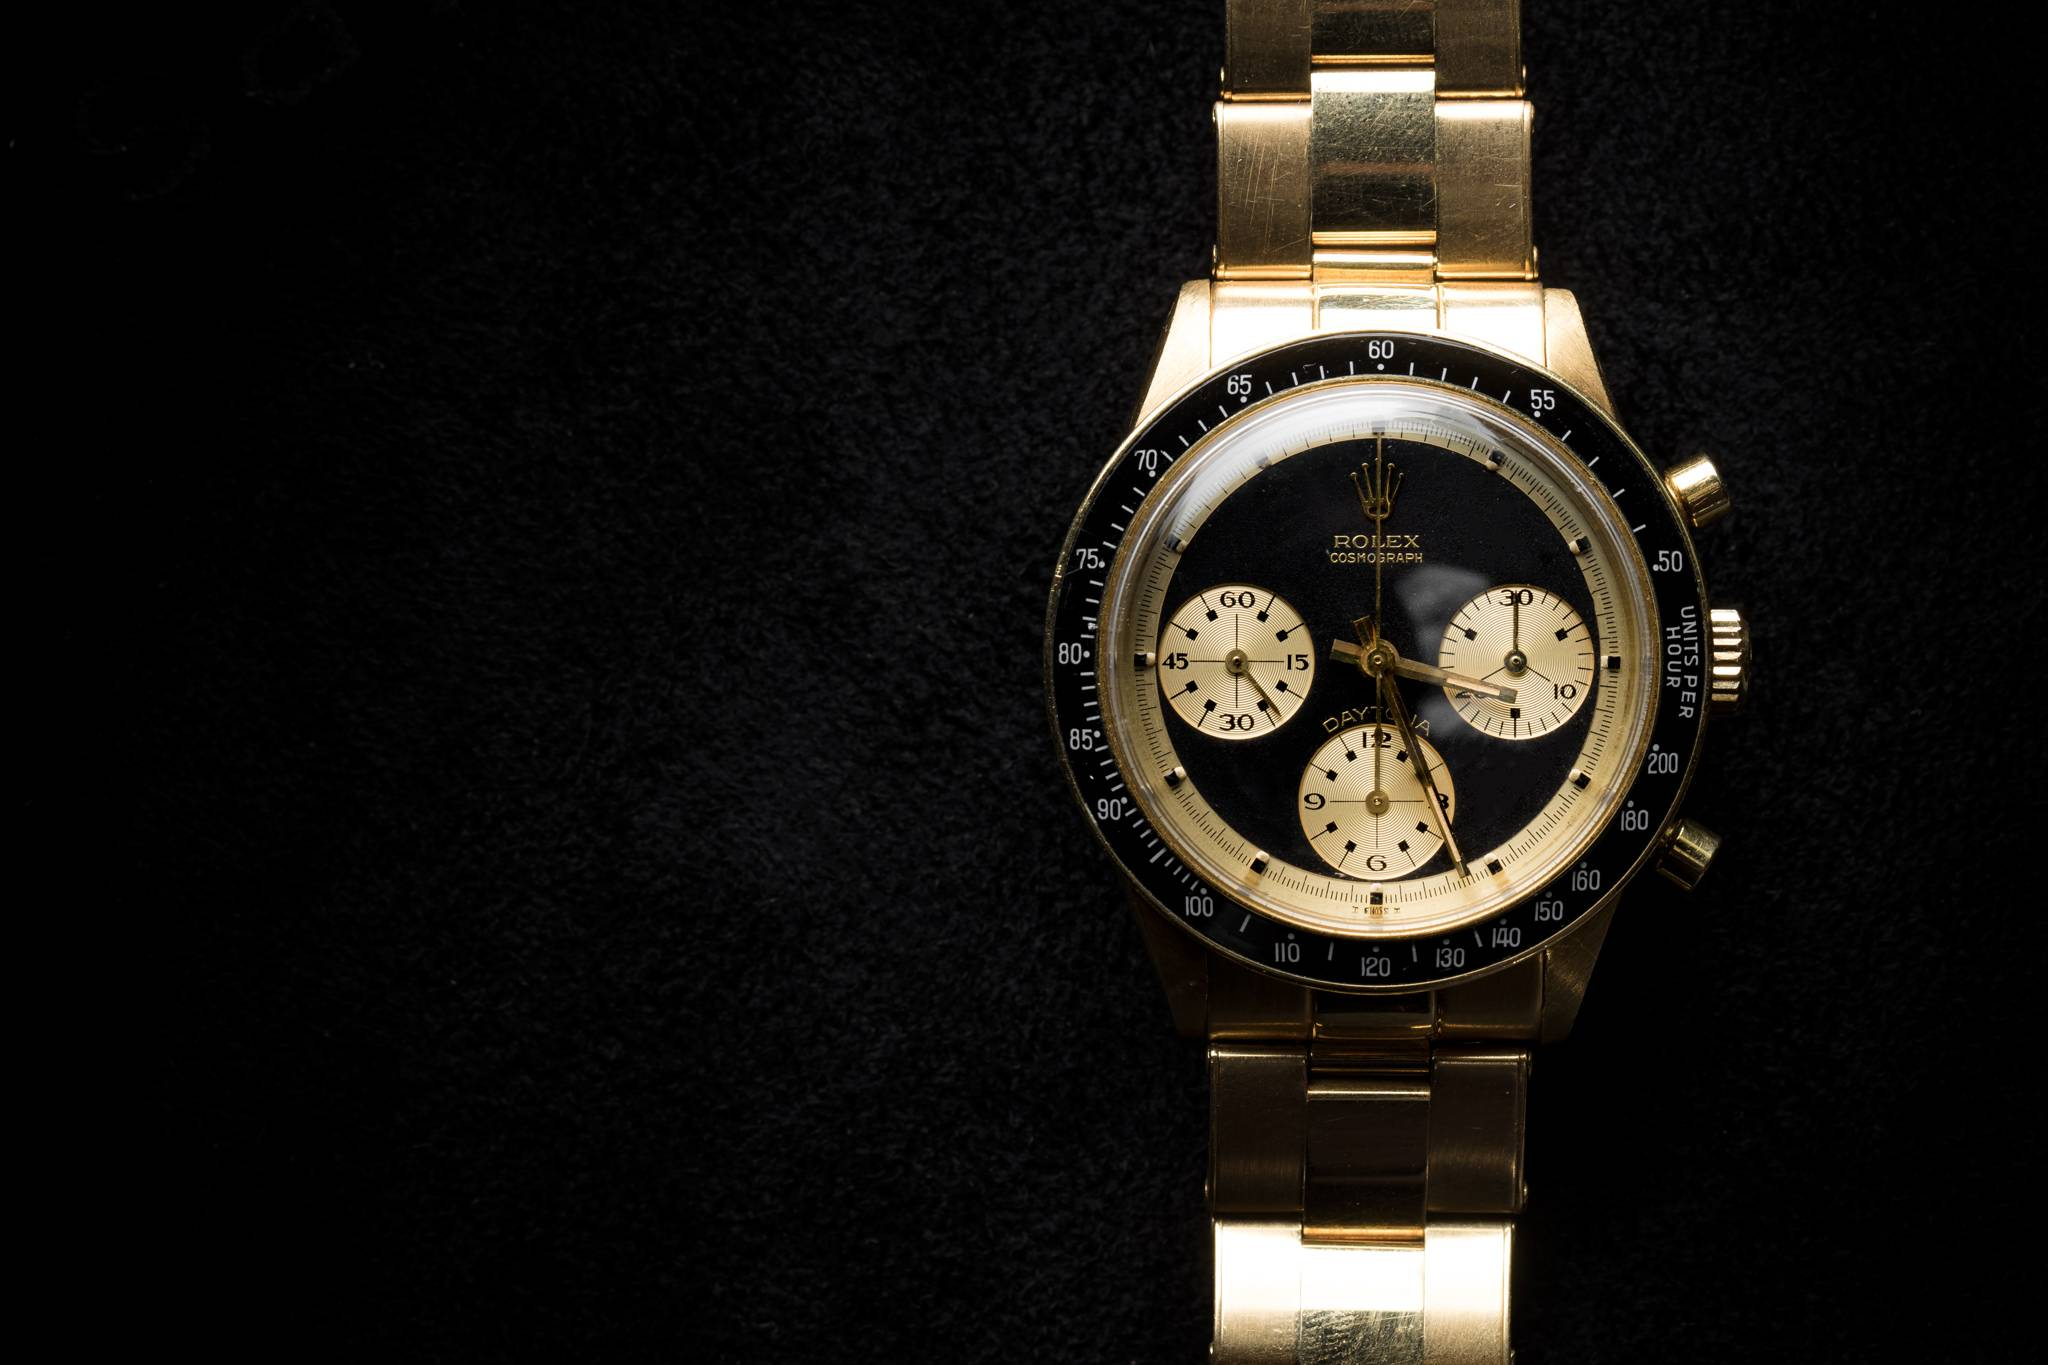 Rolex 'The Hermès Paul Newman', Reference 6241, Yellow Gold, 1968 Feature